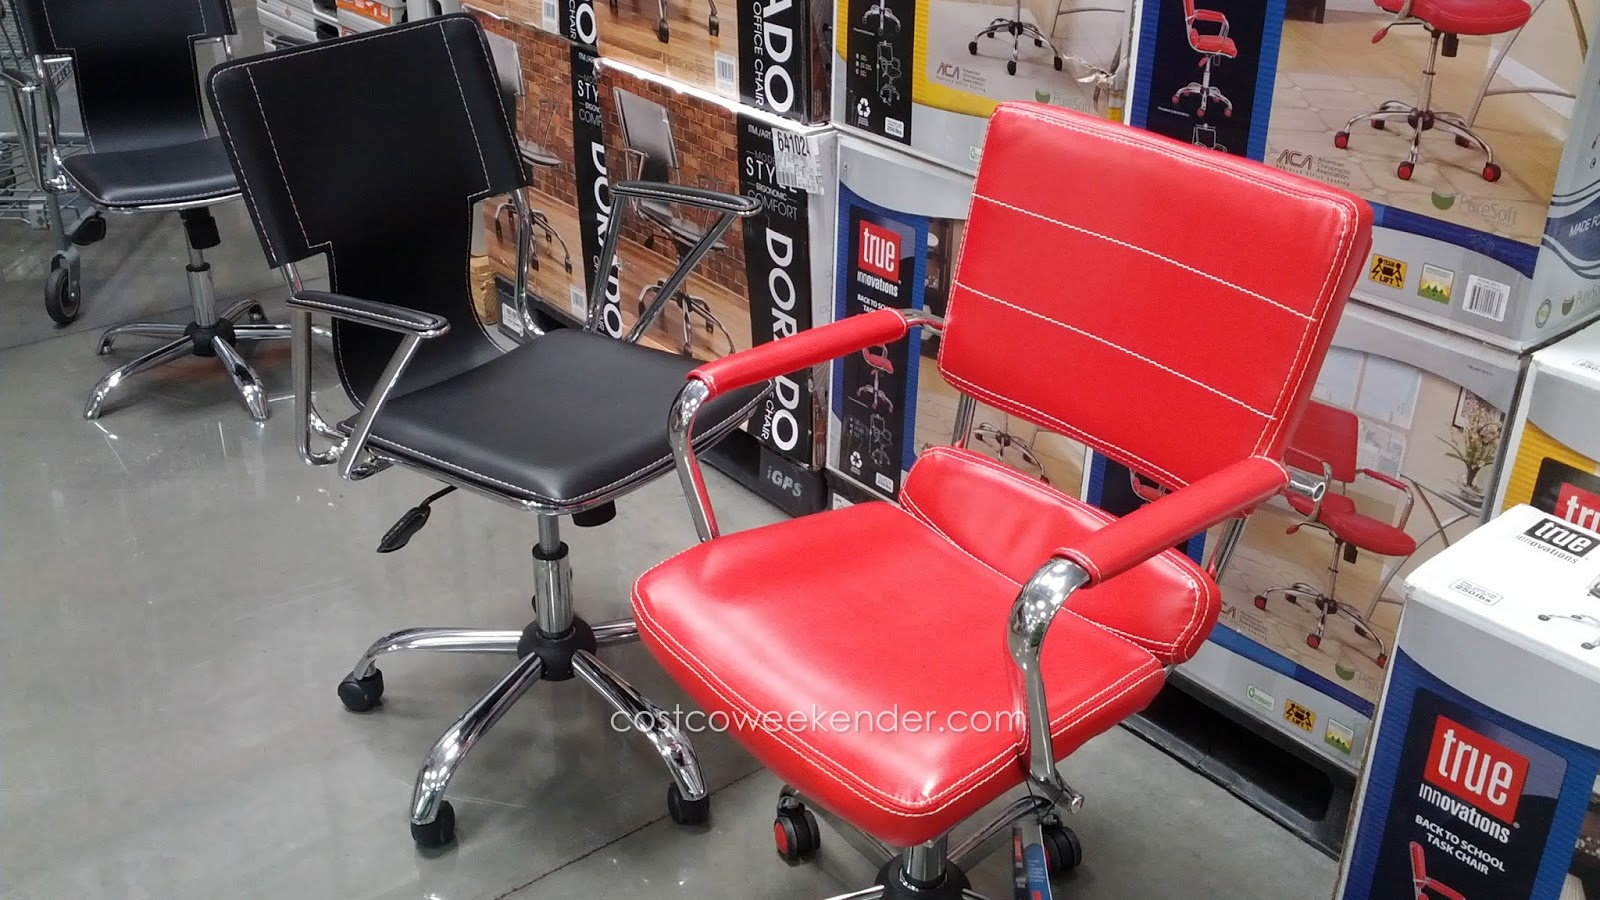 True Innovations Back To School Task Chair Comes In A Stylish Red Color